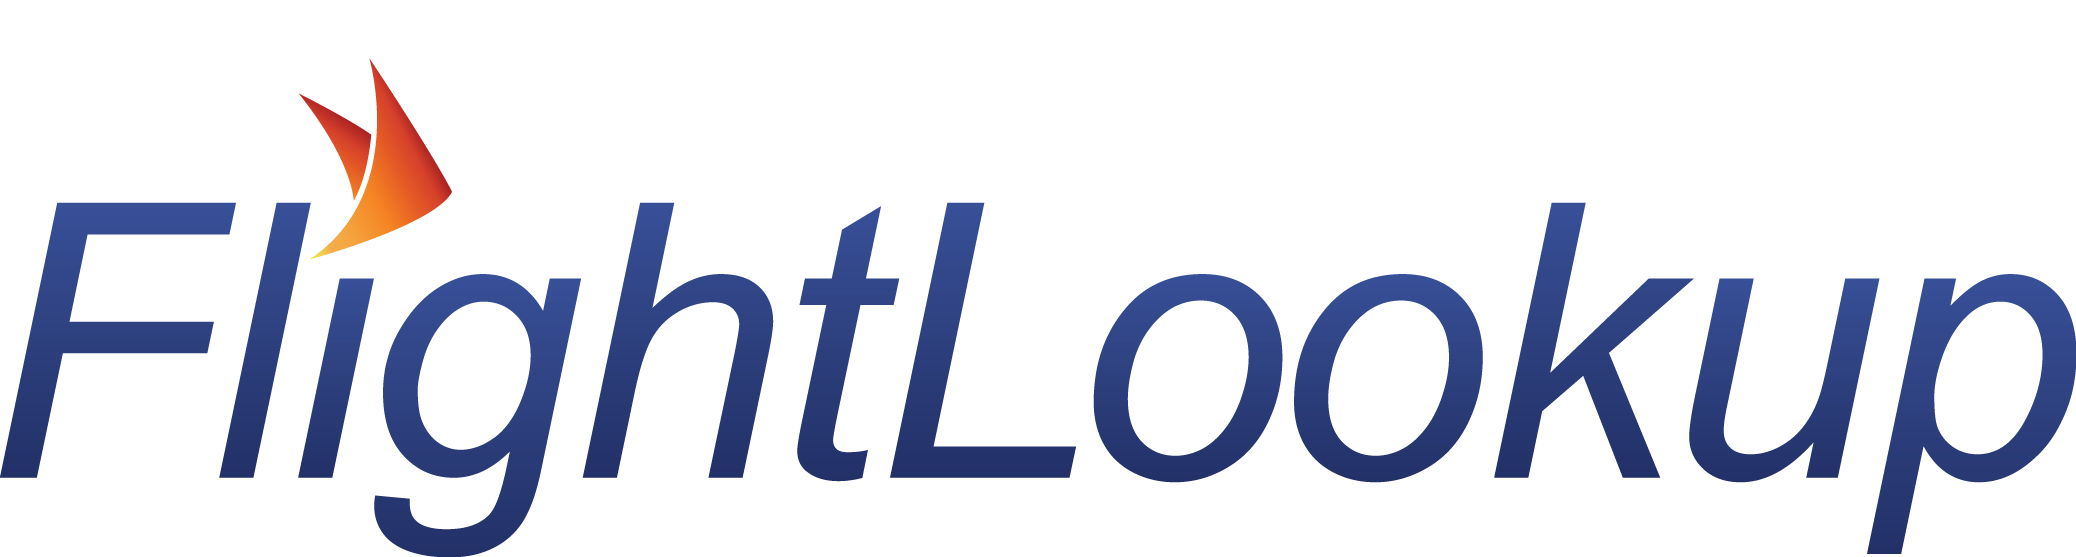 FlightLookup logo.png